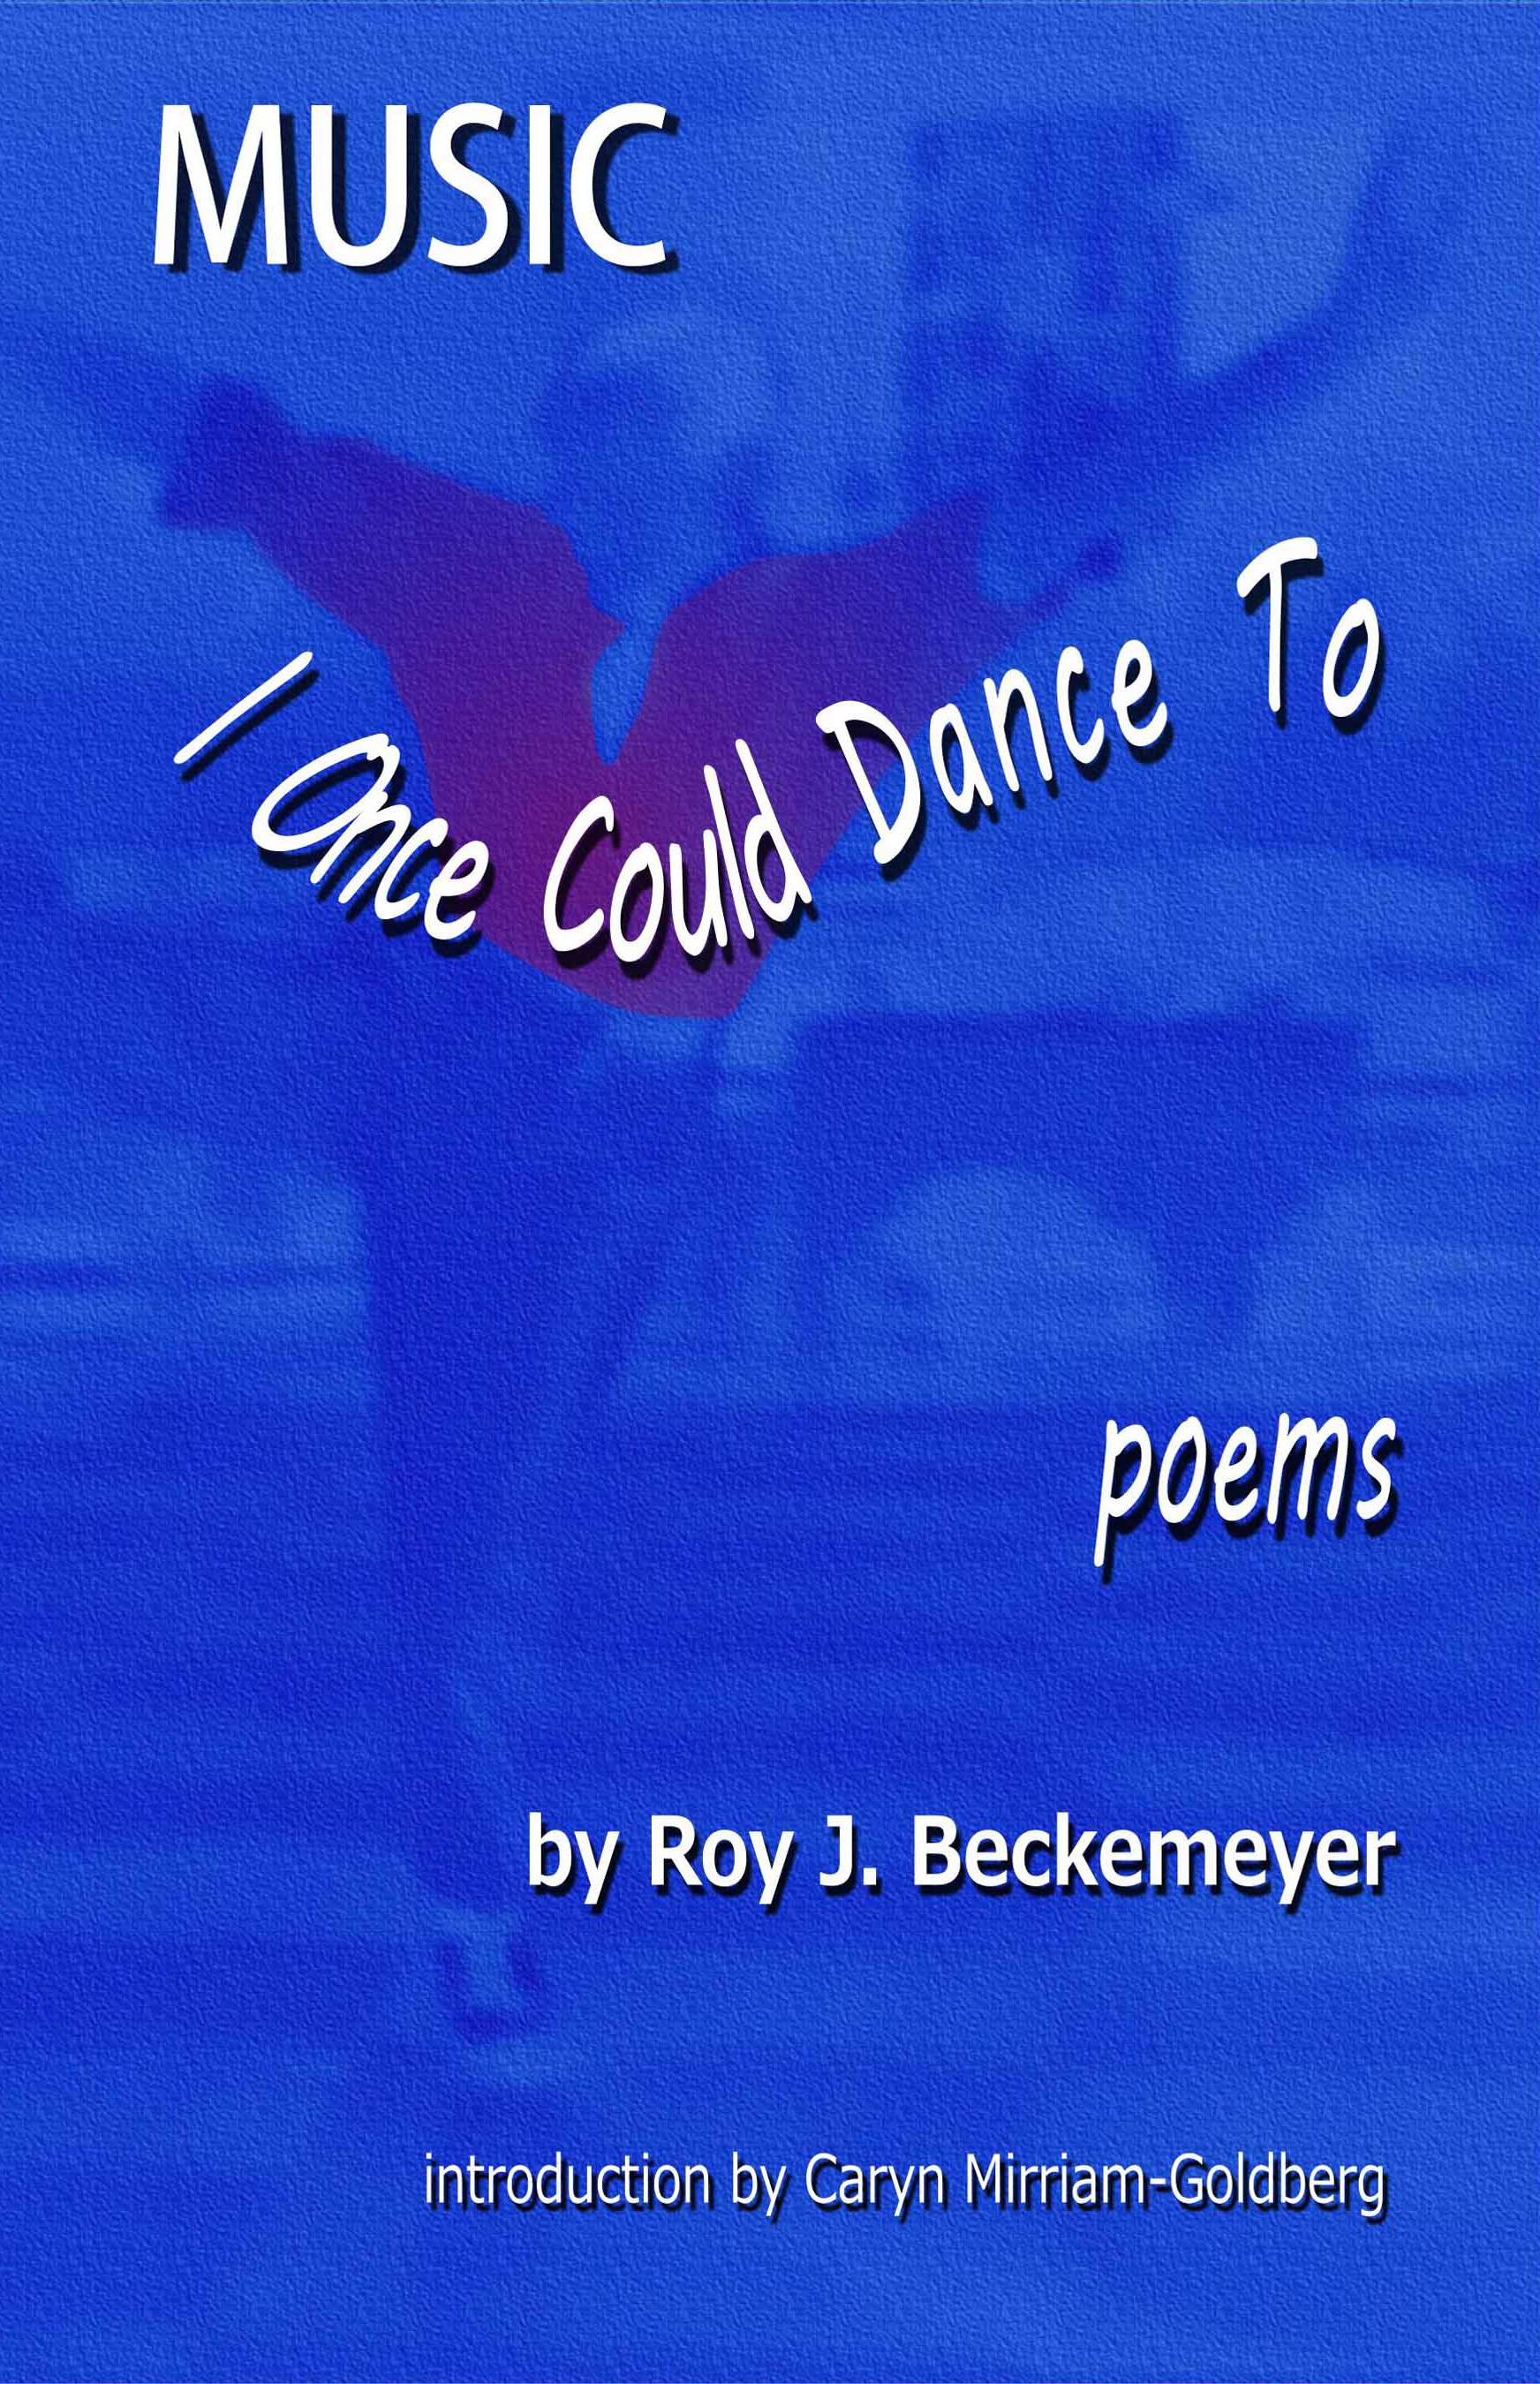 cover art for Music I Once Could Dance To: poems by Roy J. Beckemeyer